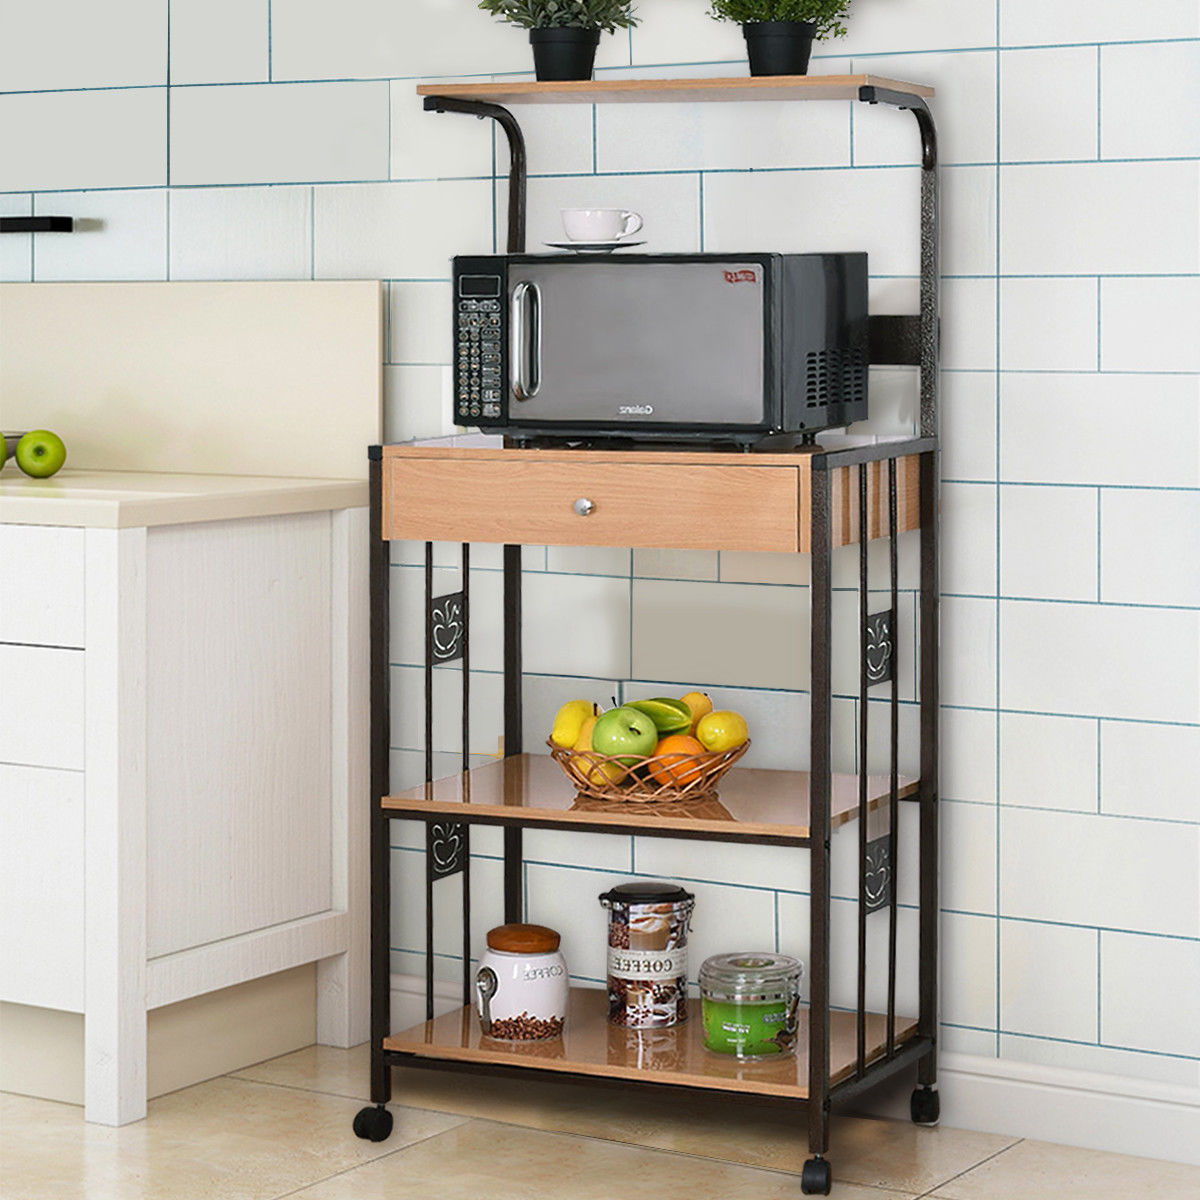 Ghp 25 2 X15 7 X59 1 Mdf Painted Iron Portable Kitchen Bakers Rack Microwave Stand